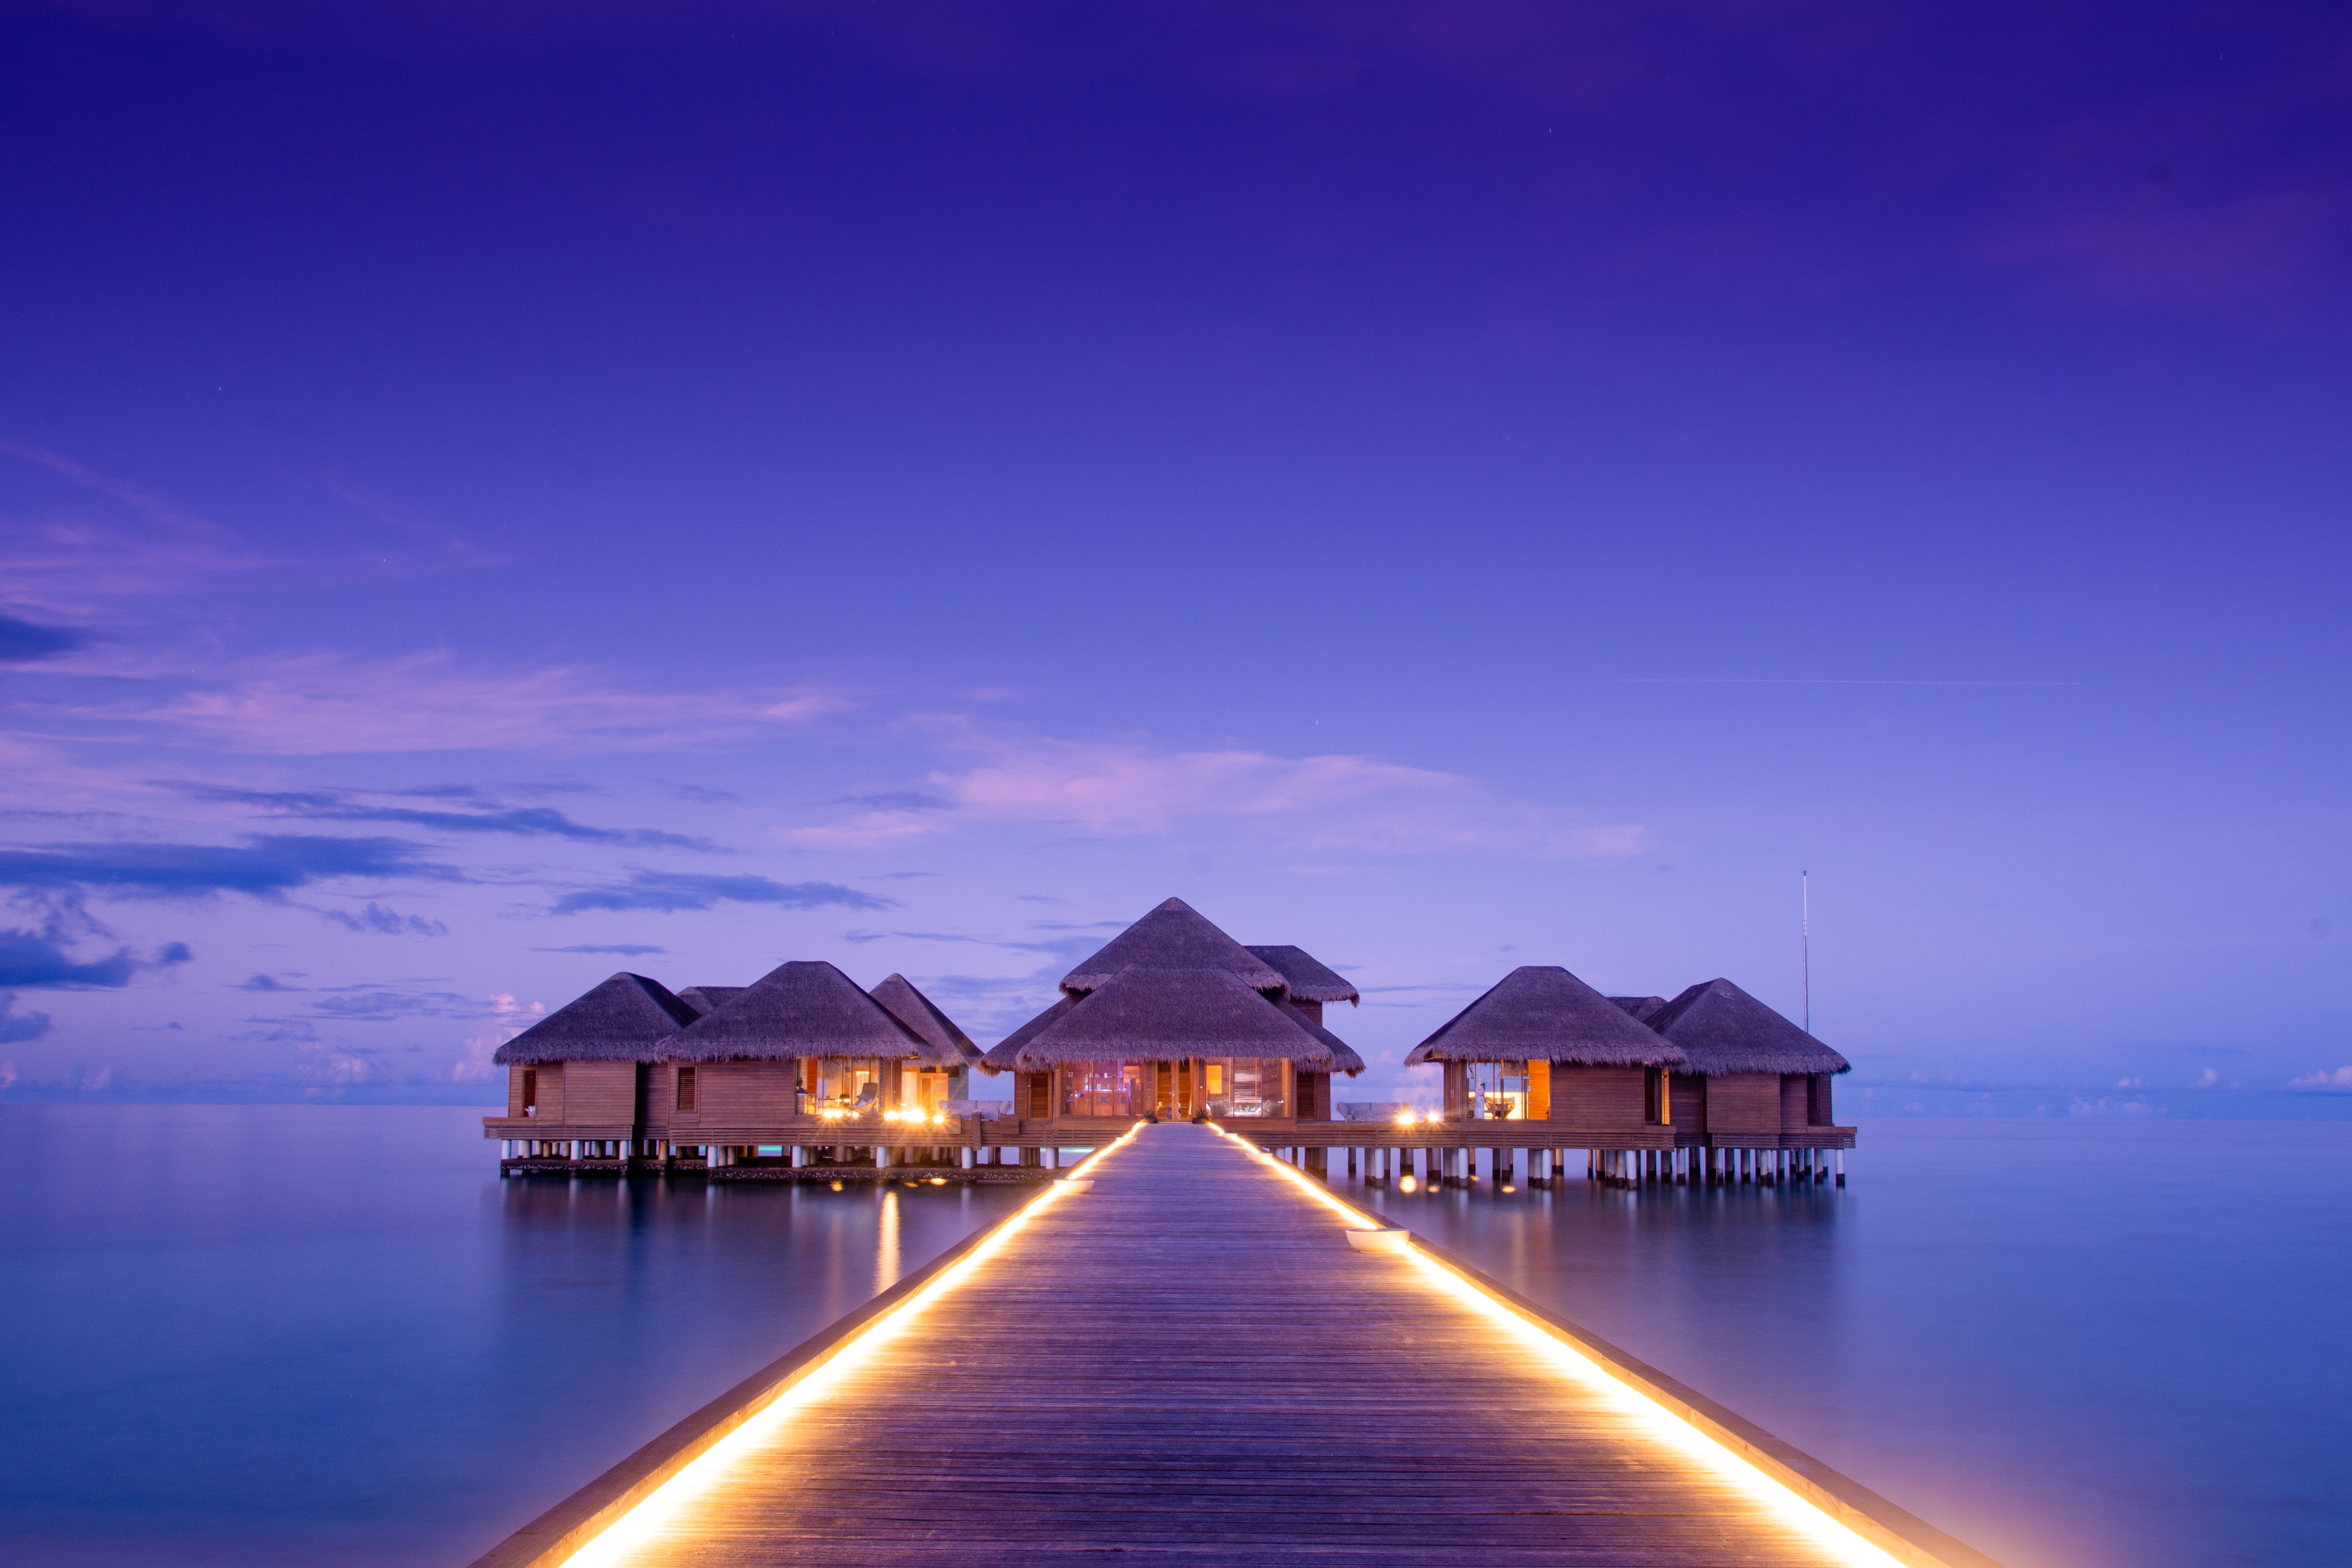 101747 download wallpaper Miscellanea, Building, Pier, Miscellaneous, Ocean, Backlight, Illumination, Bungalow screensavers and pictures for free